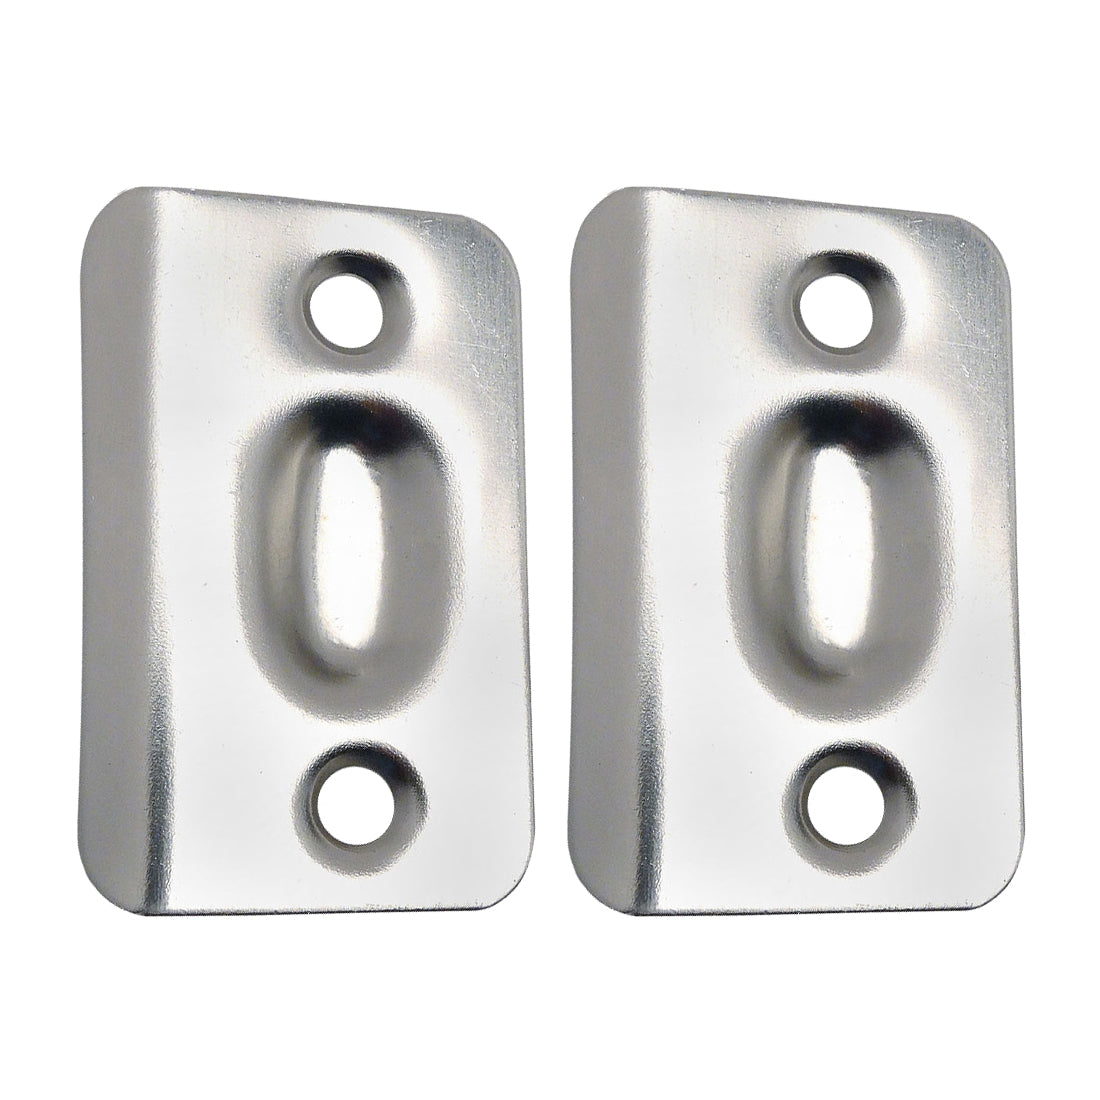 Satin Nickel Replacement Ball Catch Strike Plates (Pair)